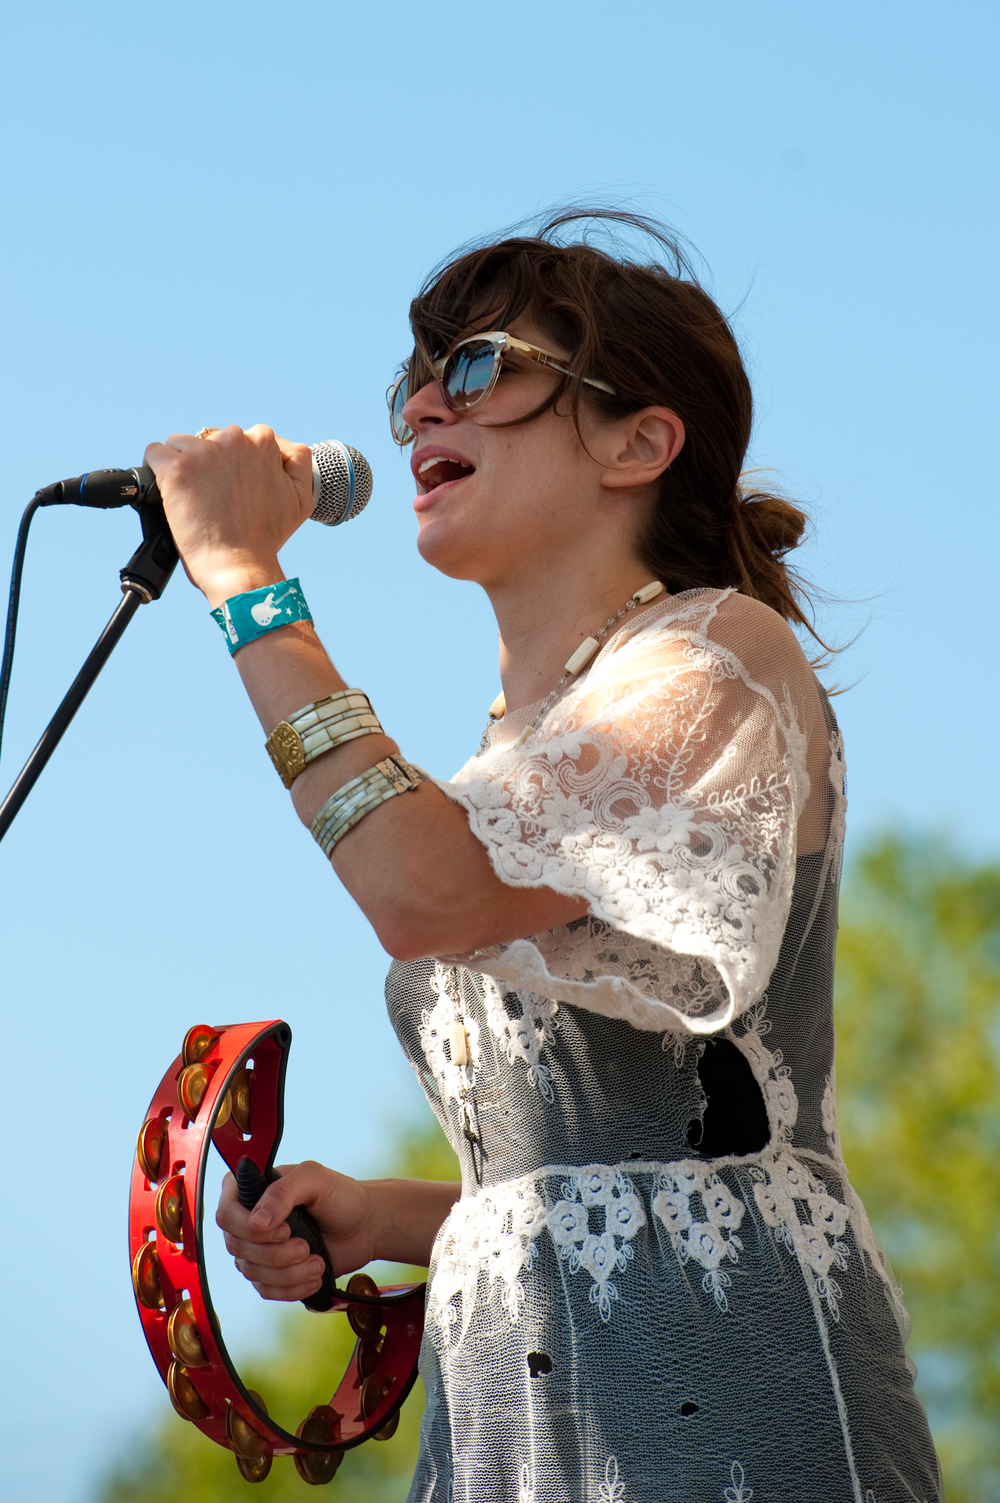 Nicole Atkins & The Black Sea © 2011 Lynda Shenkman Curtis